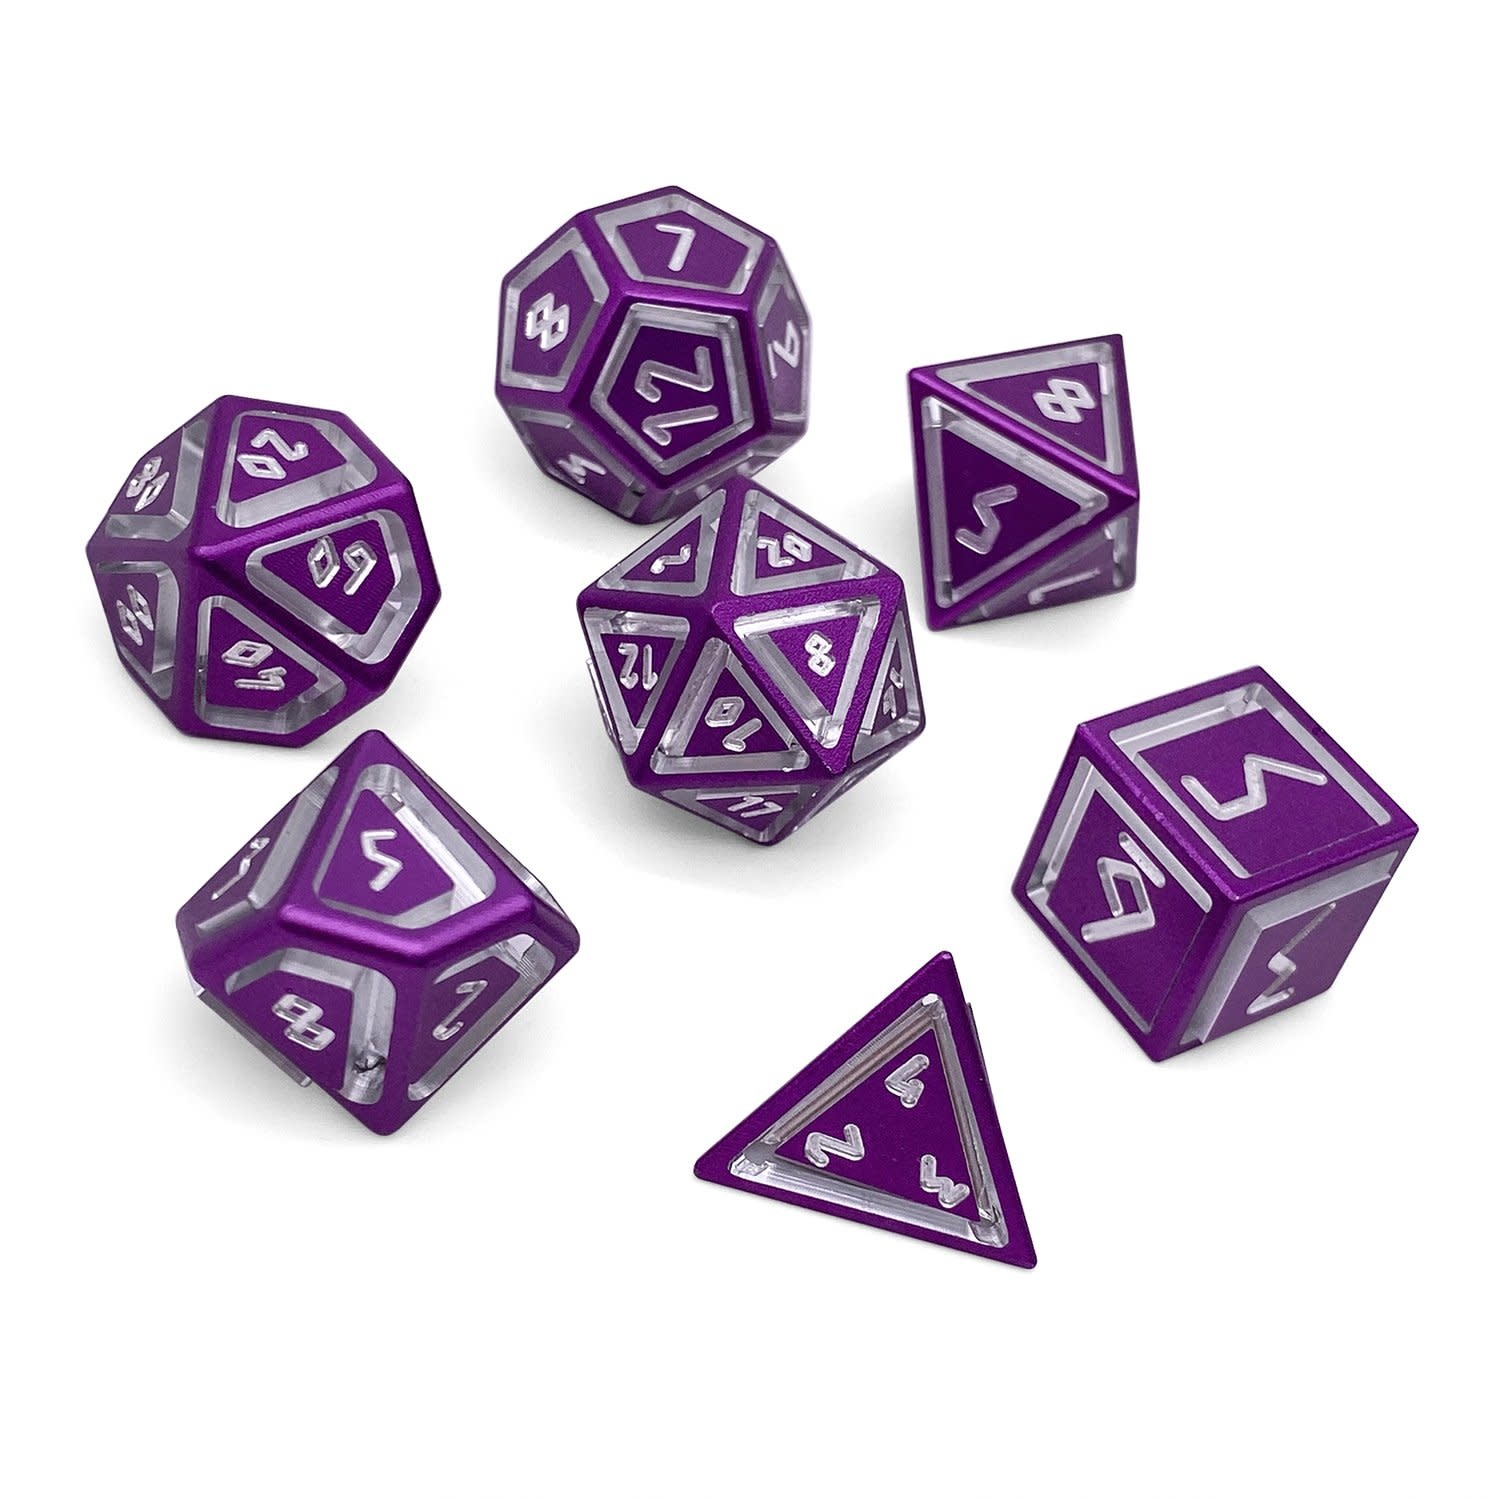 Norse Foundry Nimbus Dice Lich Purple Table Top Cafe Unmatched design the norse foundry exclusive solid metal 25mm life counter die is the epitome of style… norse foundry nimbus dice lich purple